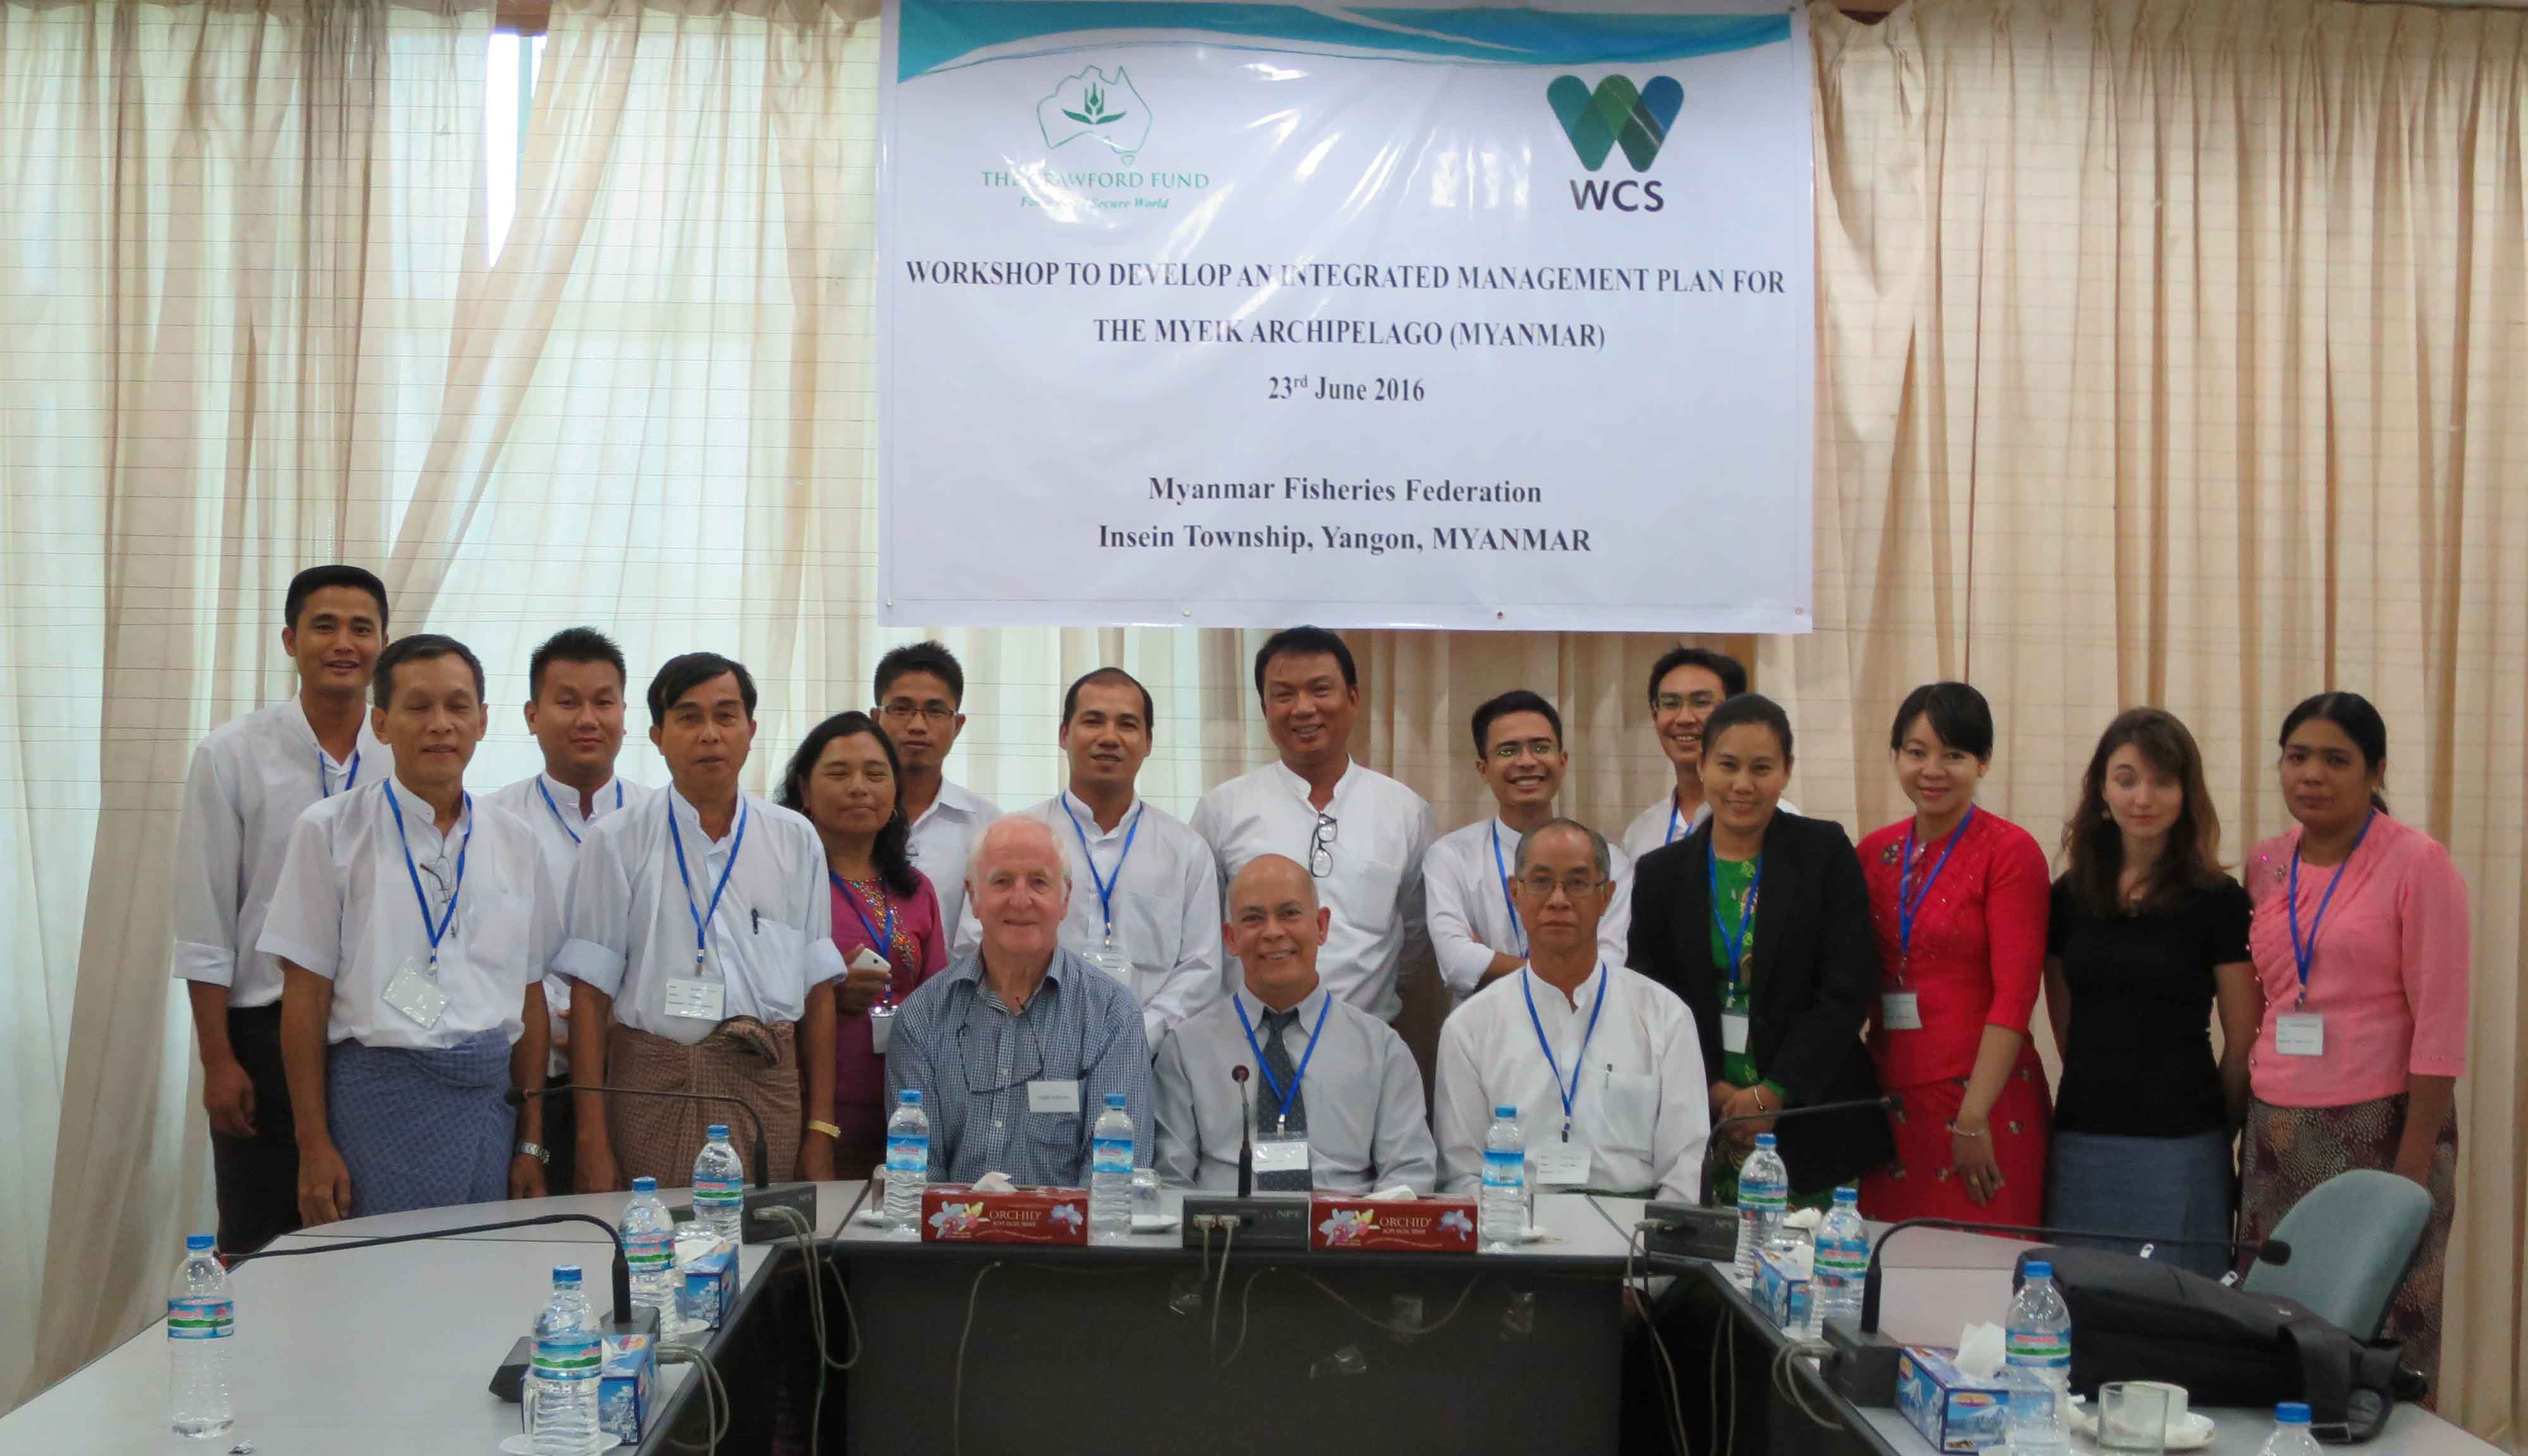 tas-myanmarcrawfordfund_workshop_participants_june2016_small